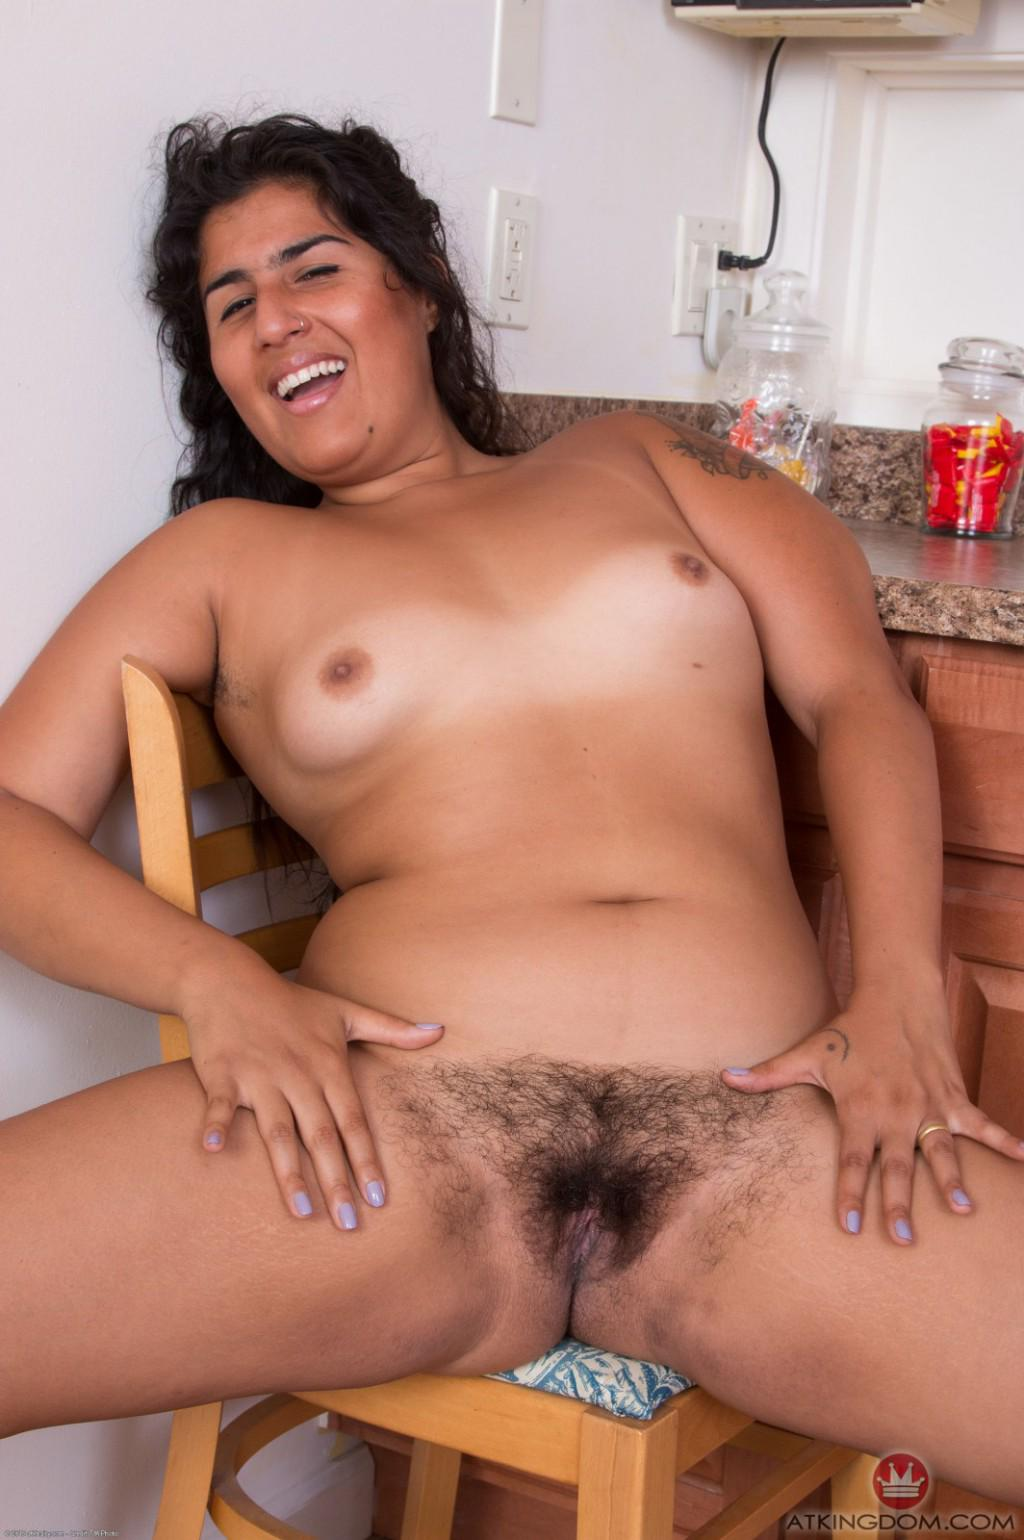 Tom guess gallery hairy latina